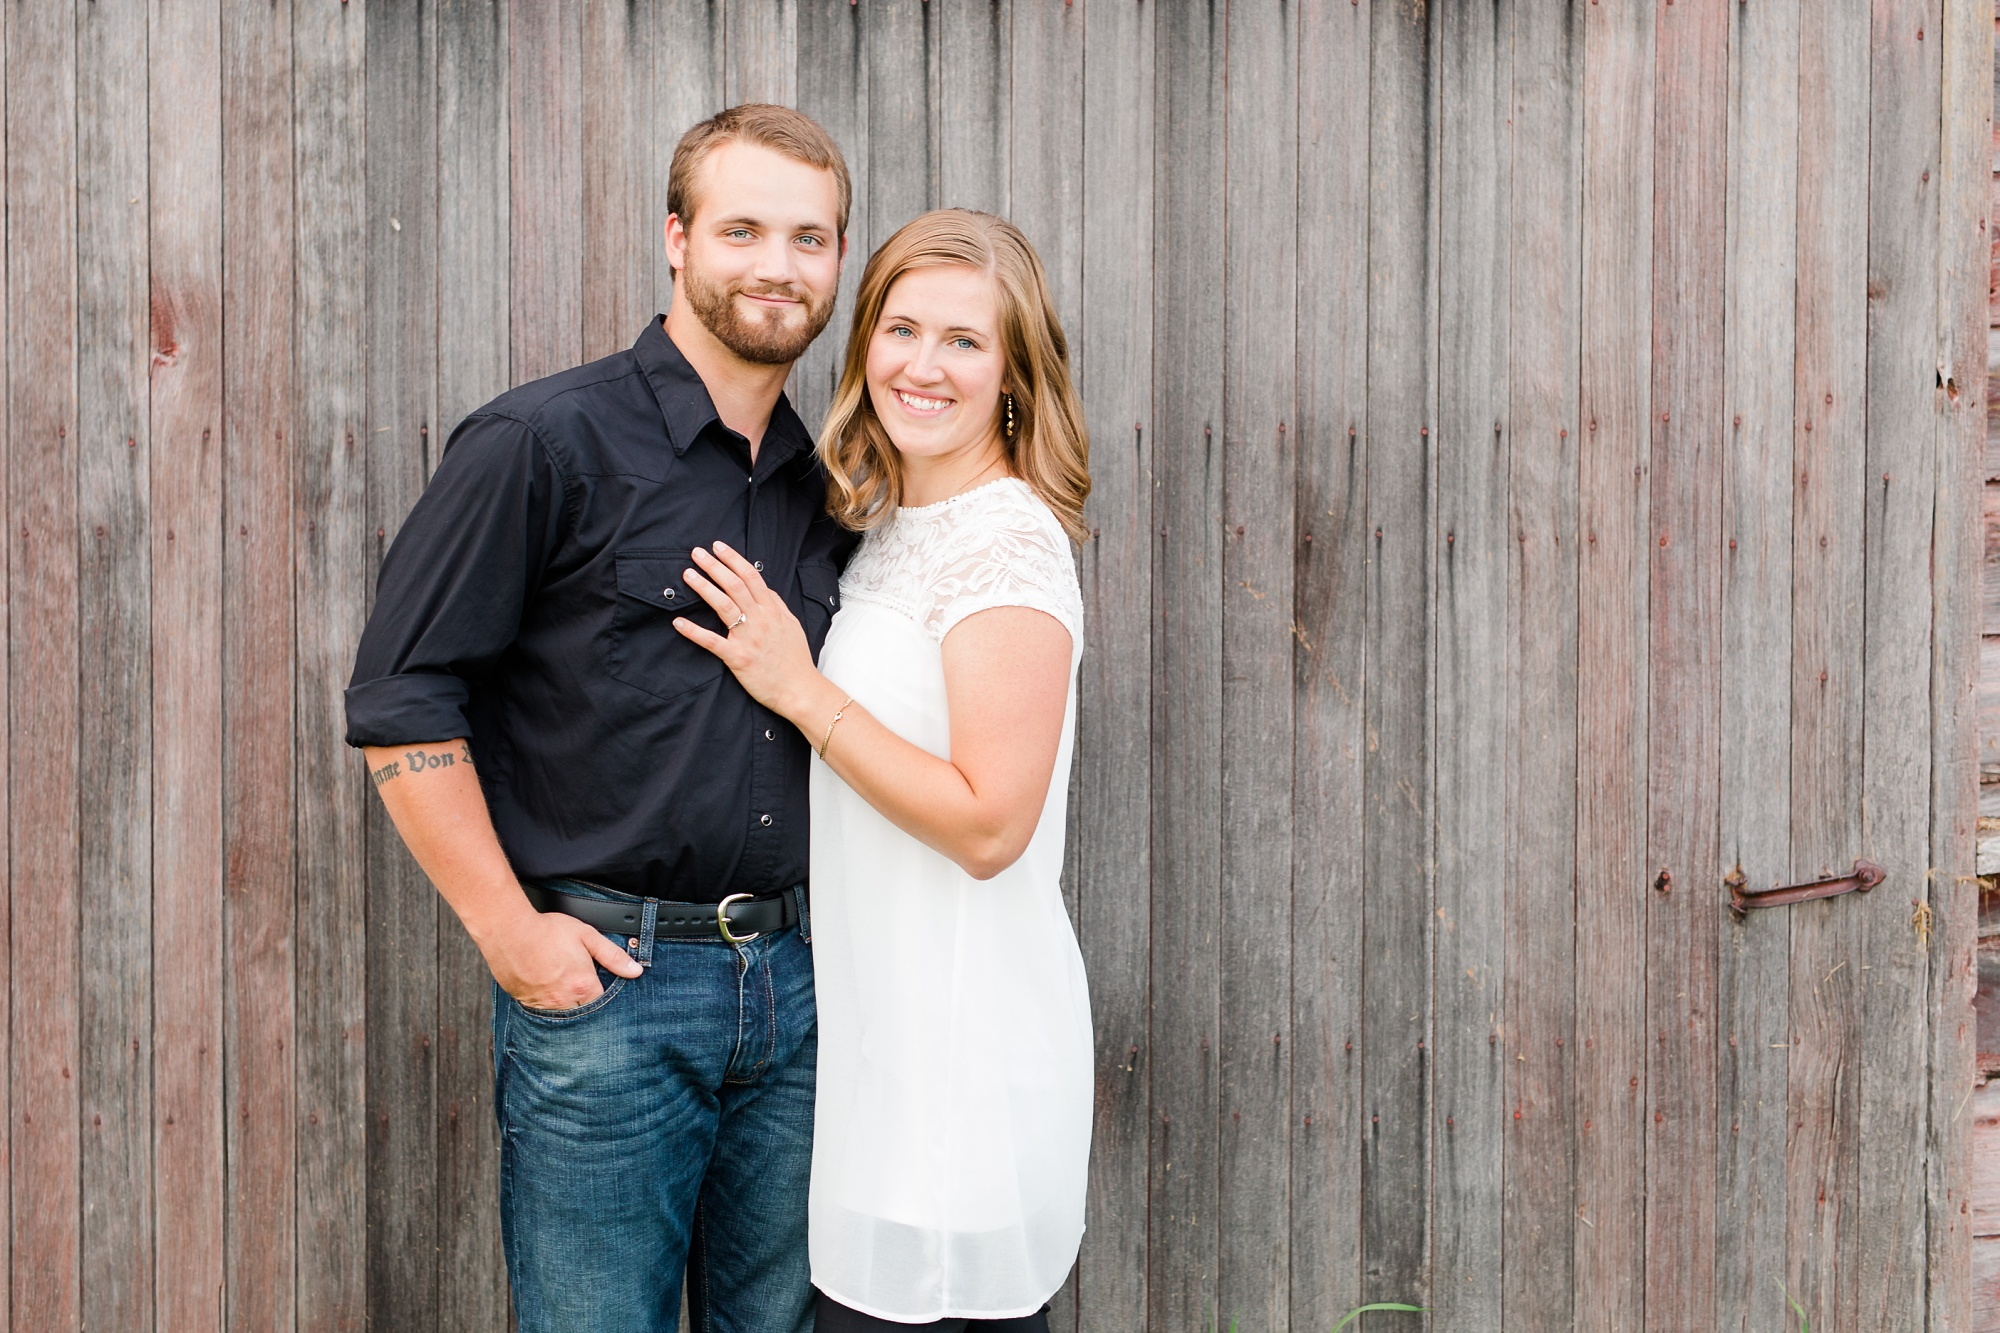 AmberLangerudPhotography_Countryside Engagement Session in Minnesota_3114.jpg